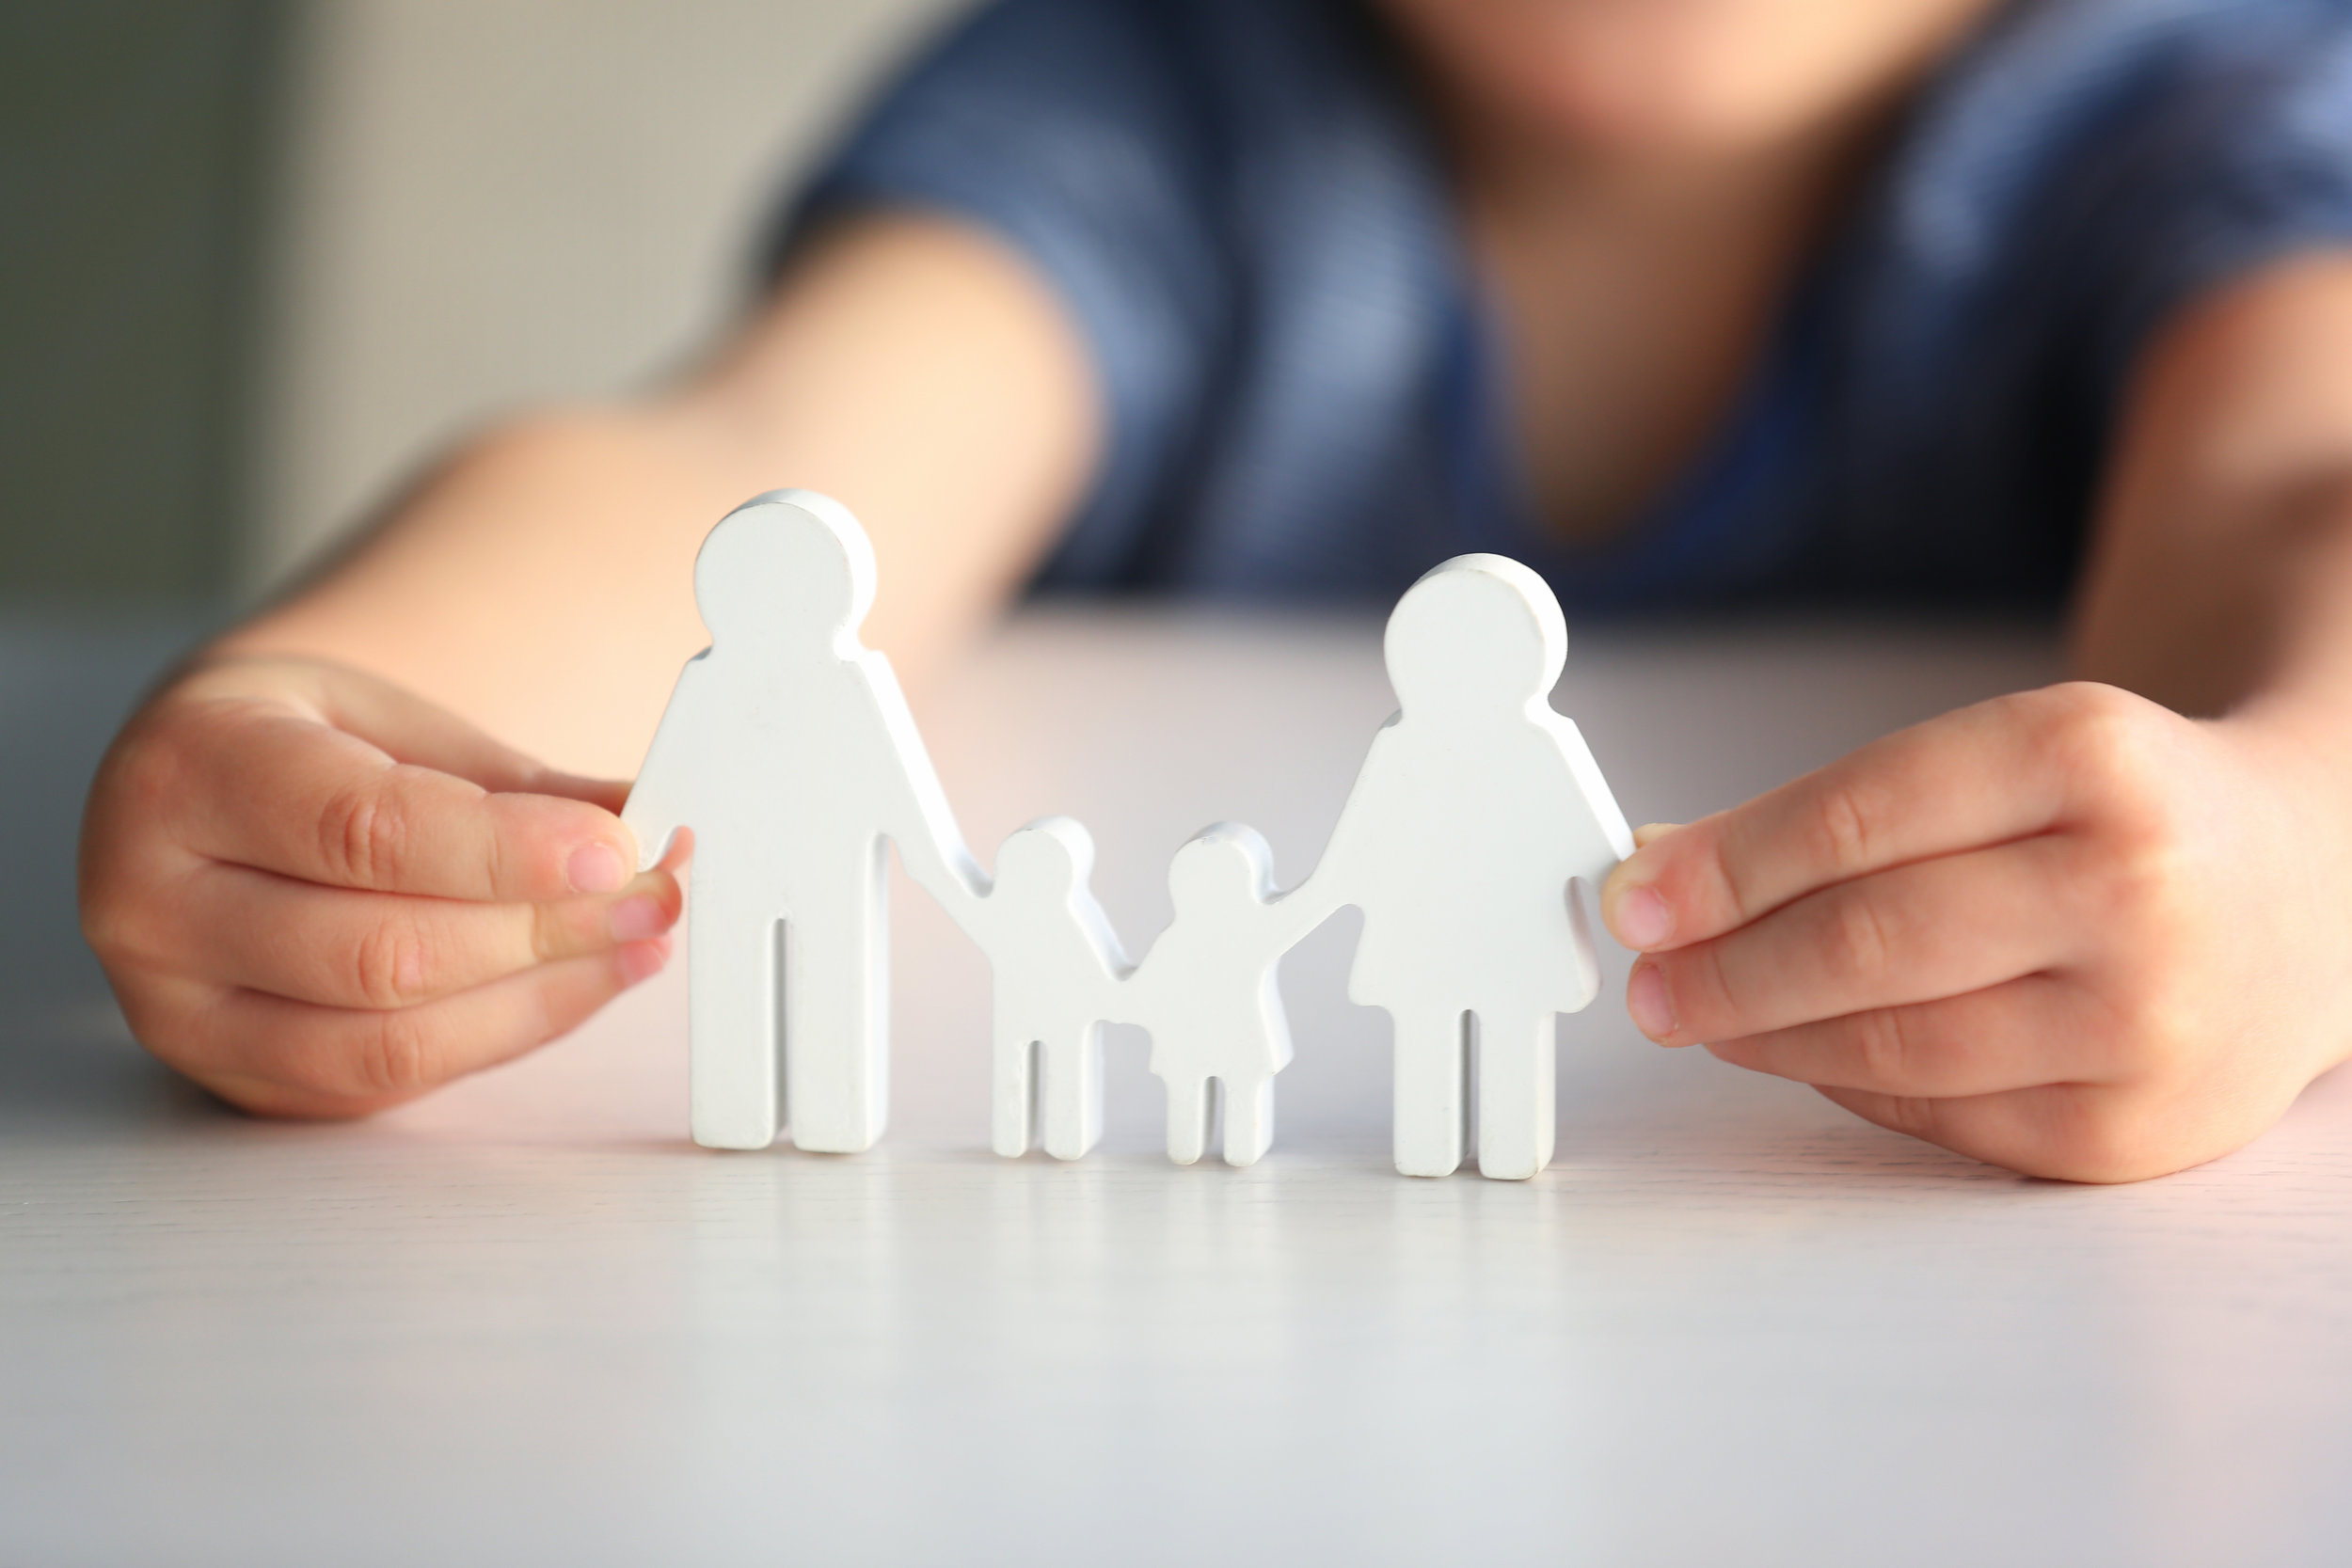 Family Law - Without question, some of the most emotionally-charged issues in all of law fall under the domain of family law. Are you having legal issues regarding marriage, adoption, divorce, or you are seeking custody of children? We focus much of our practice on family law, so we can guide you through your issues.